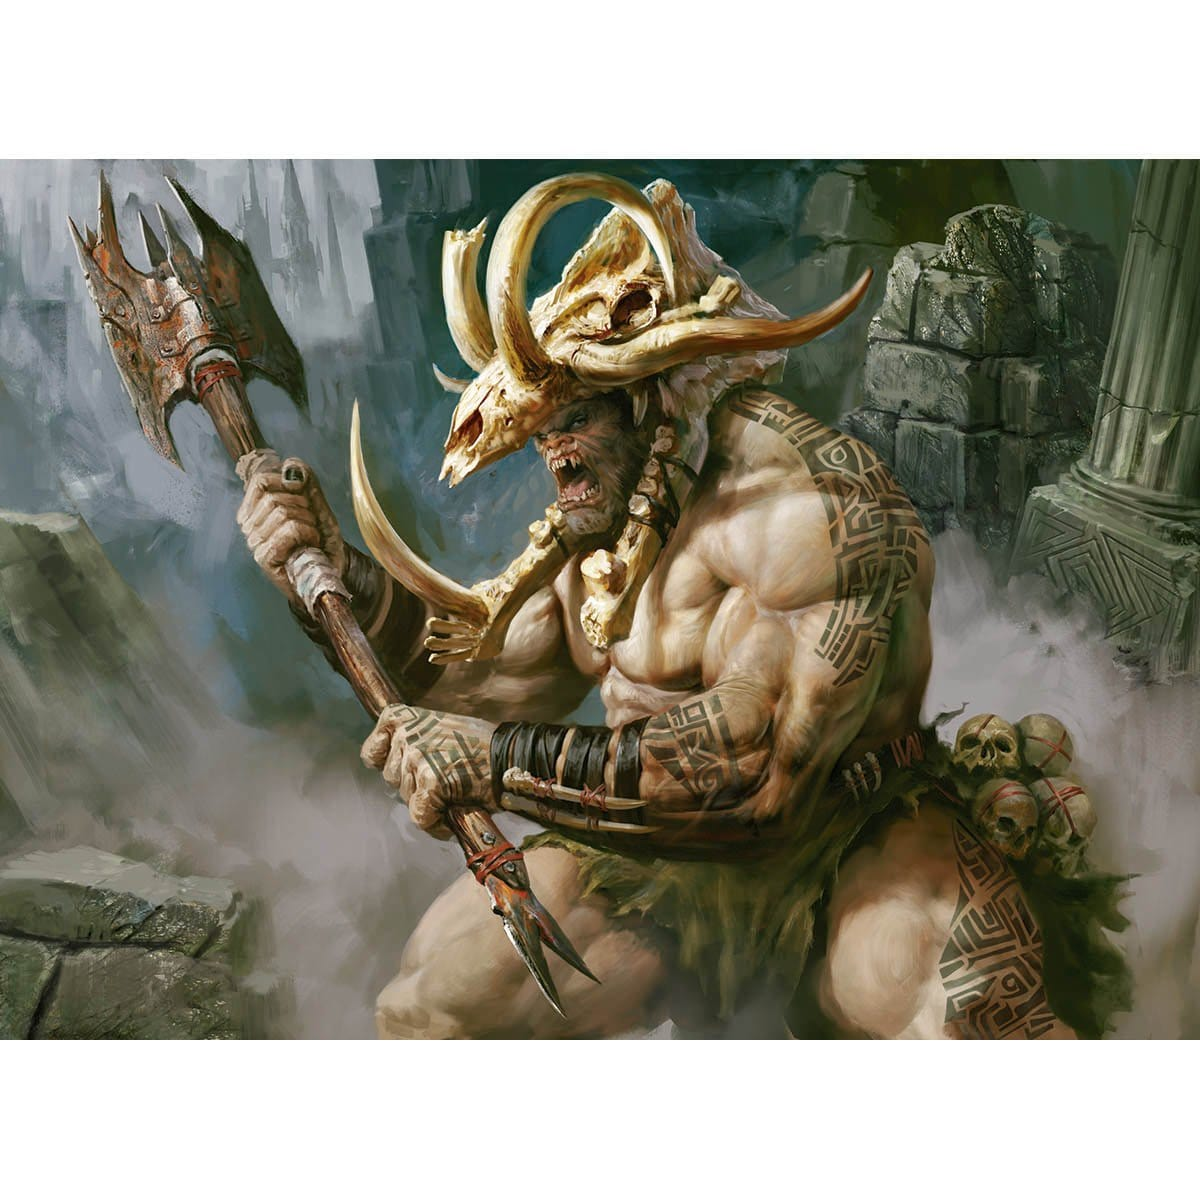 Ogre Painbringer Print - Print - Original Magic Art - Accessories for Magic the Gathering and other card games